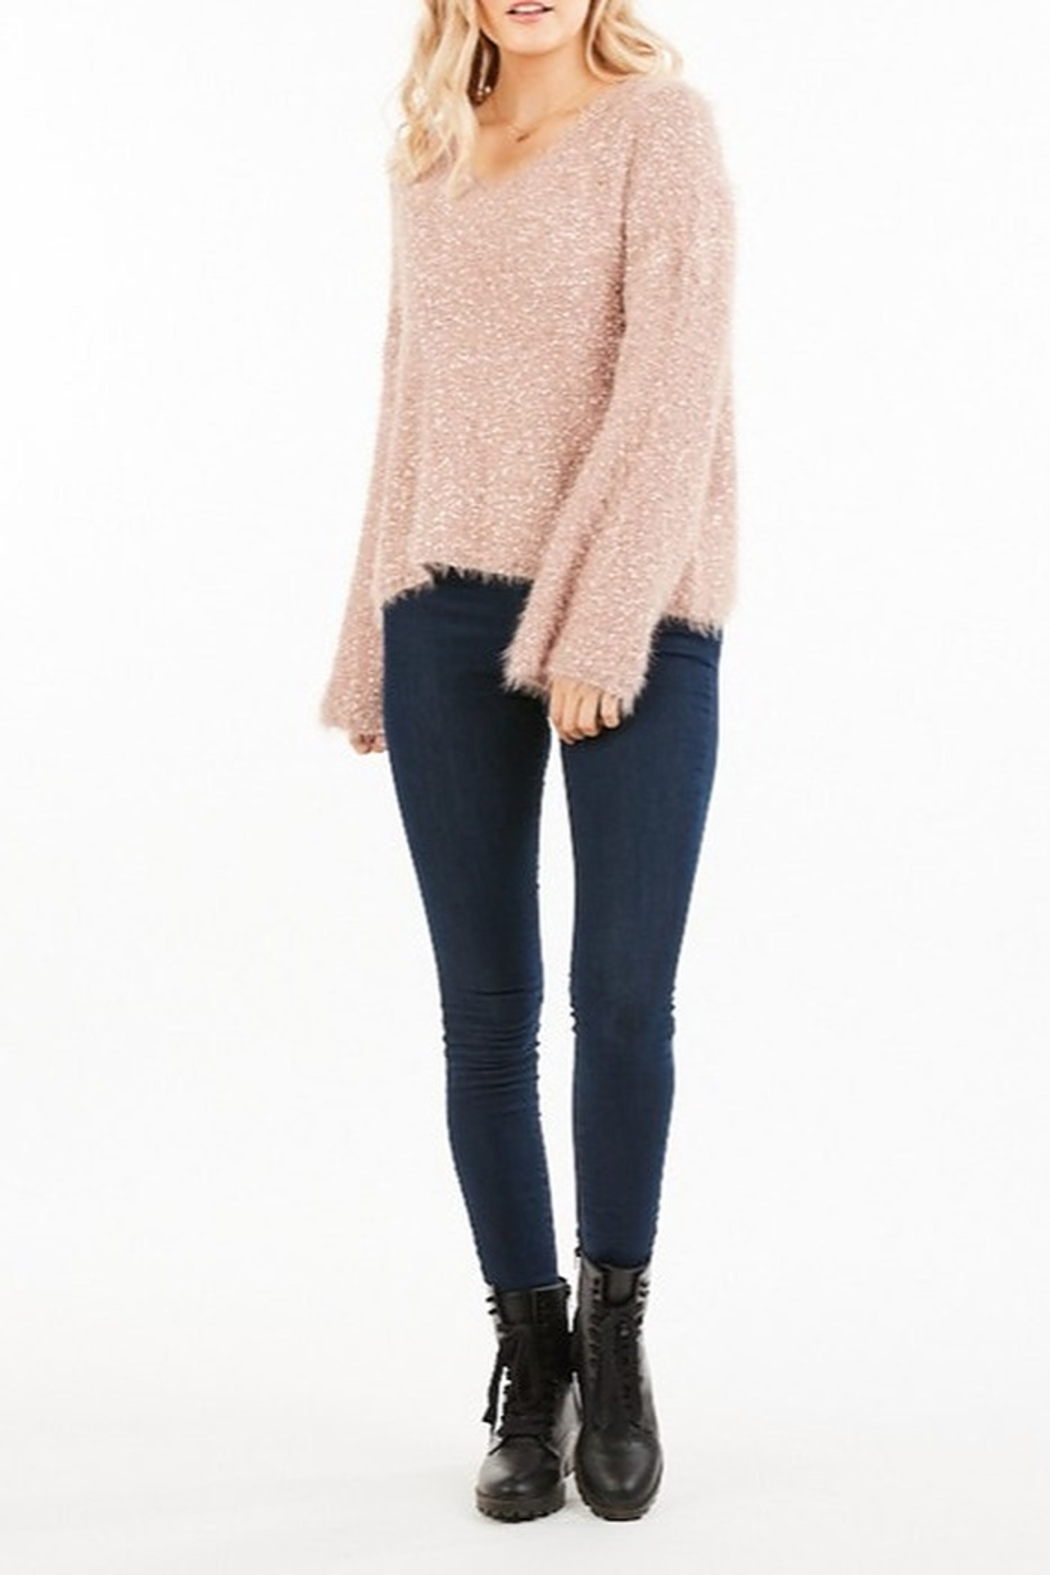 Very J  Fuzzy Knit Sweater - Side Cropped Image